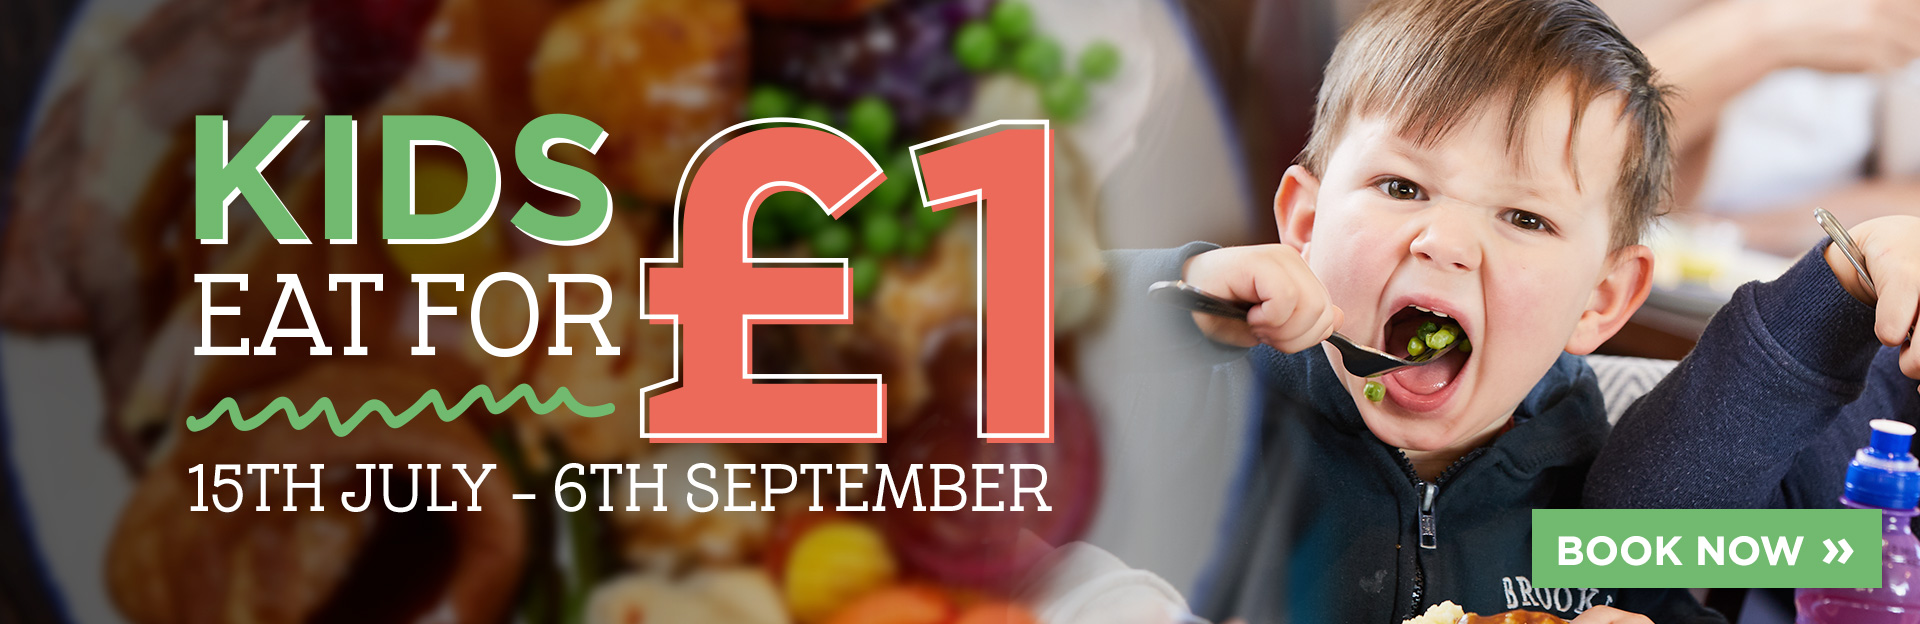 Kids eat for £1 at Brucefield Farm